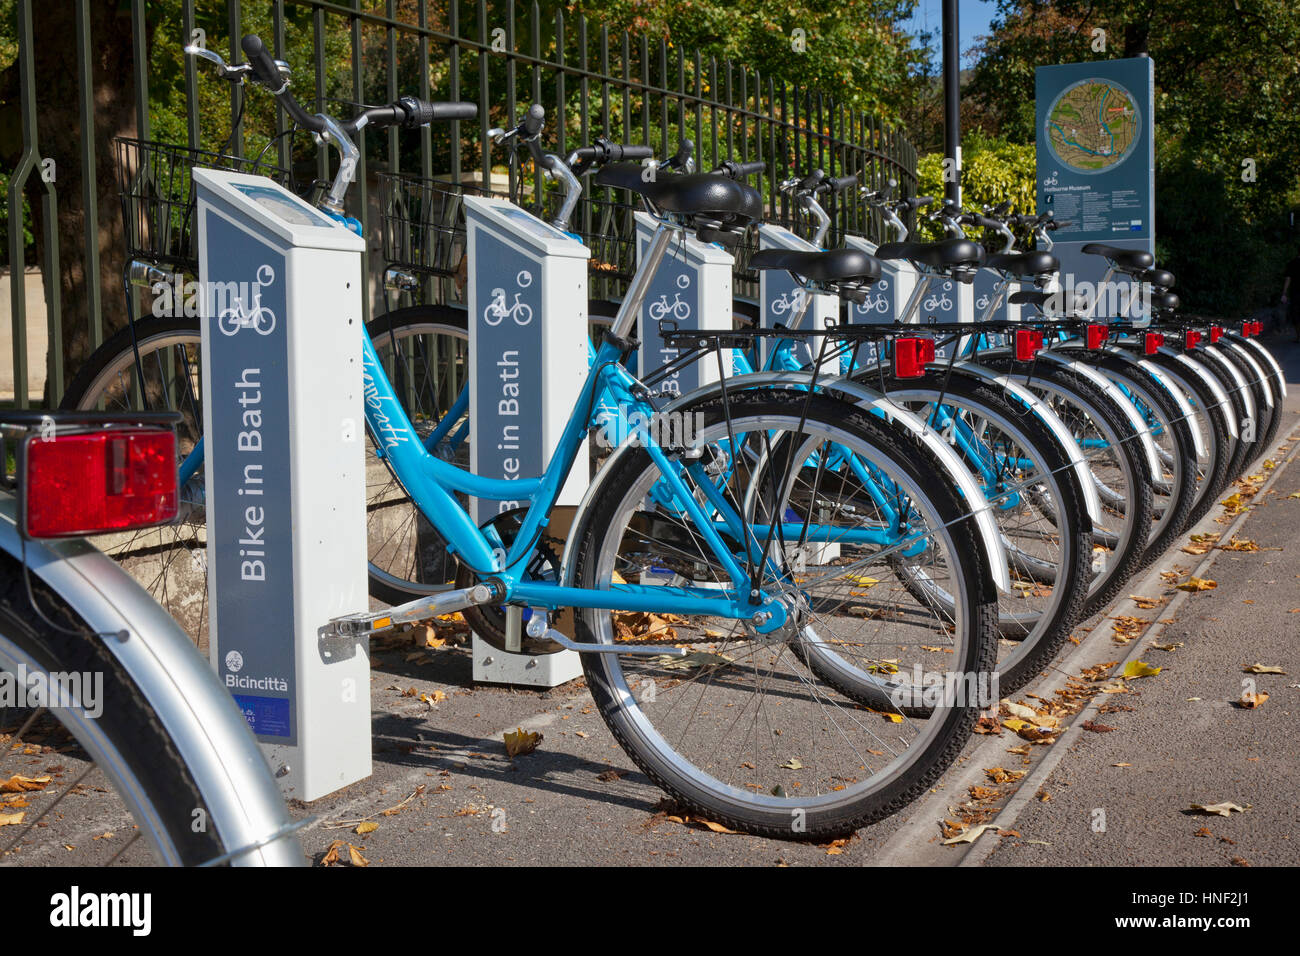 Bath, United Kingdom - October 2, 2011: A row of 'Bike in Bath' rental cycles parked at the automatic docking - Stock Image